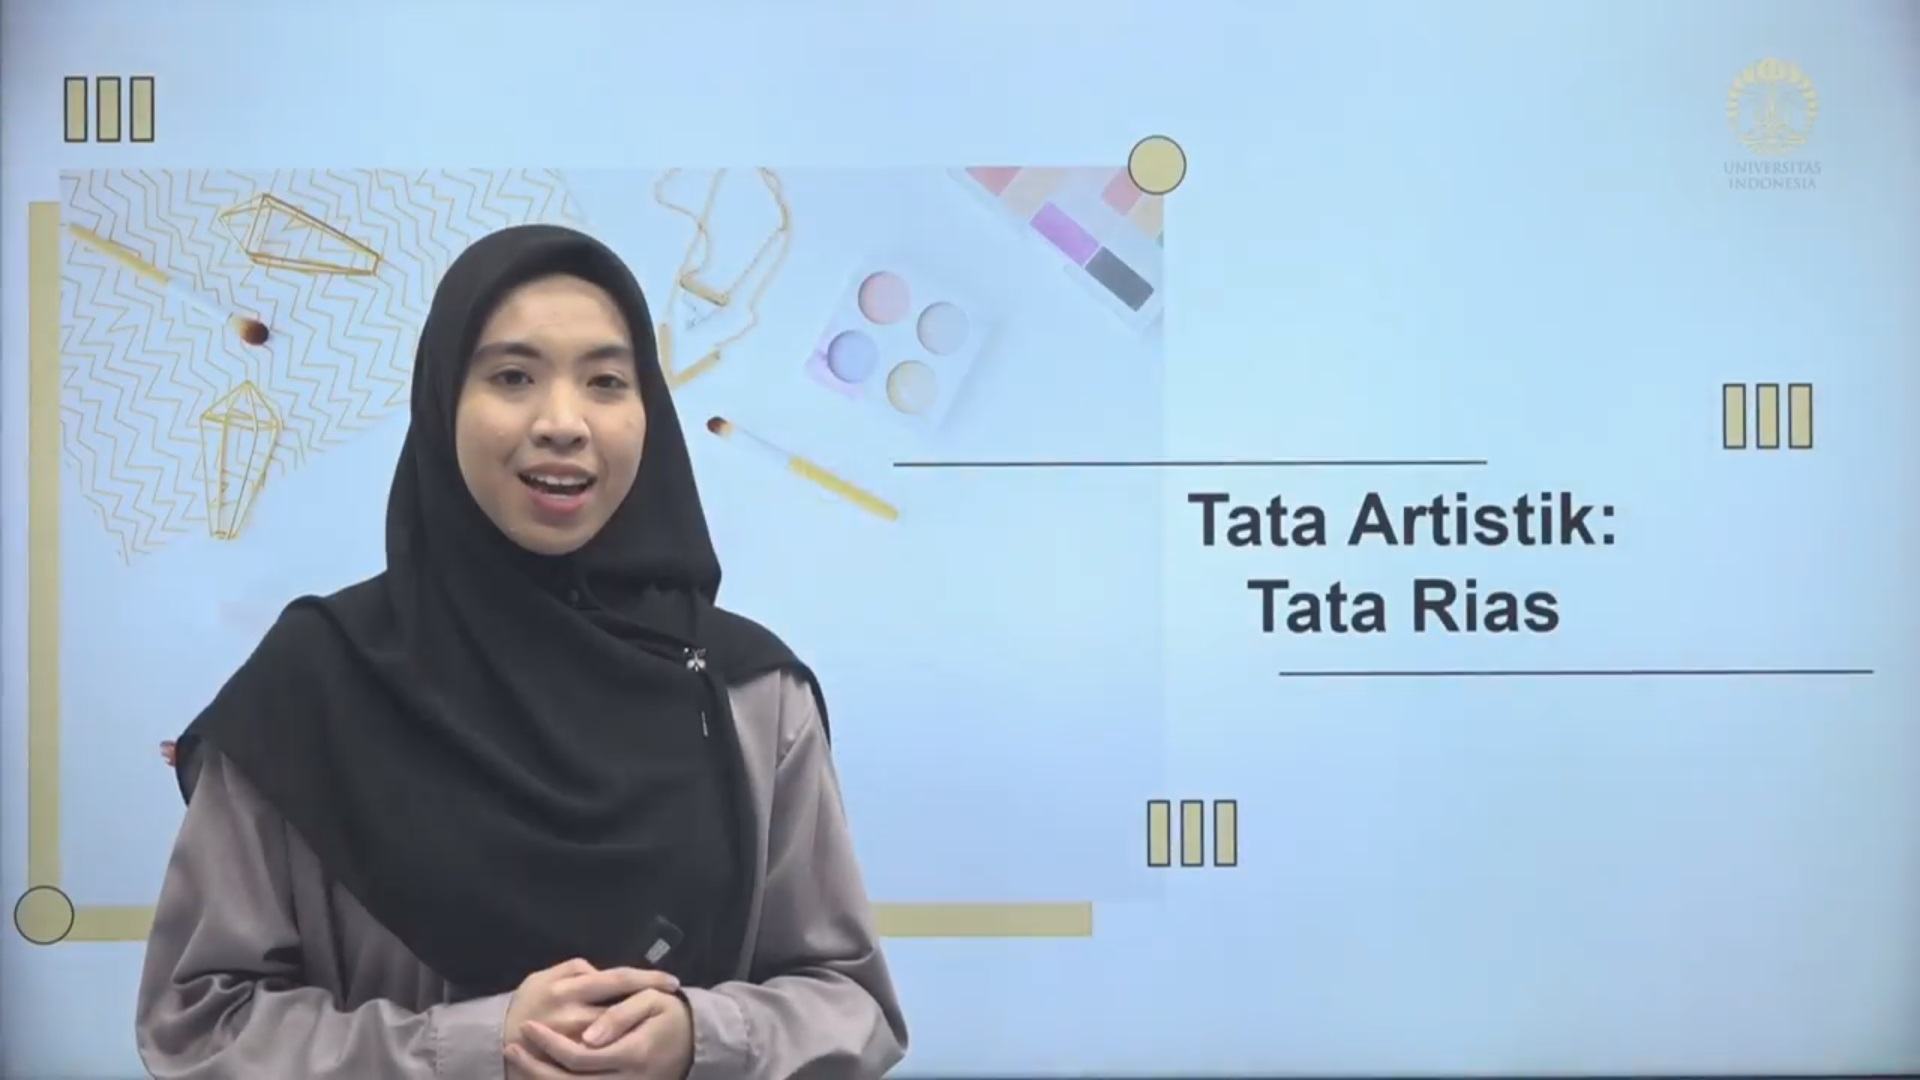 Public Relations Officer Session 02: Artistic Makeup (MC Performance)